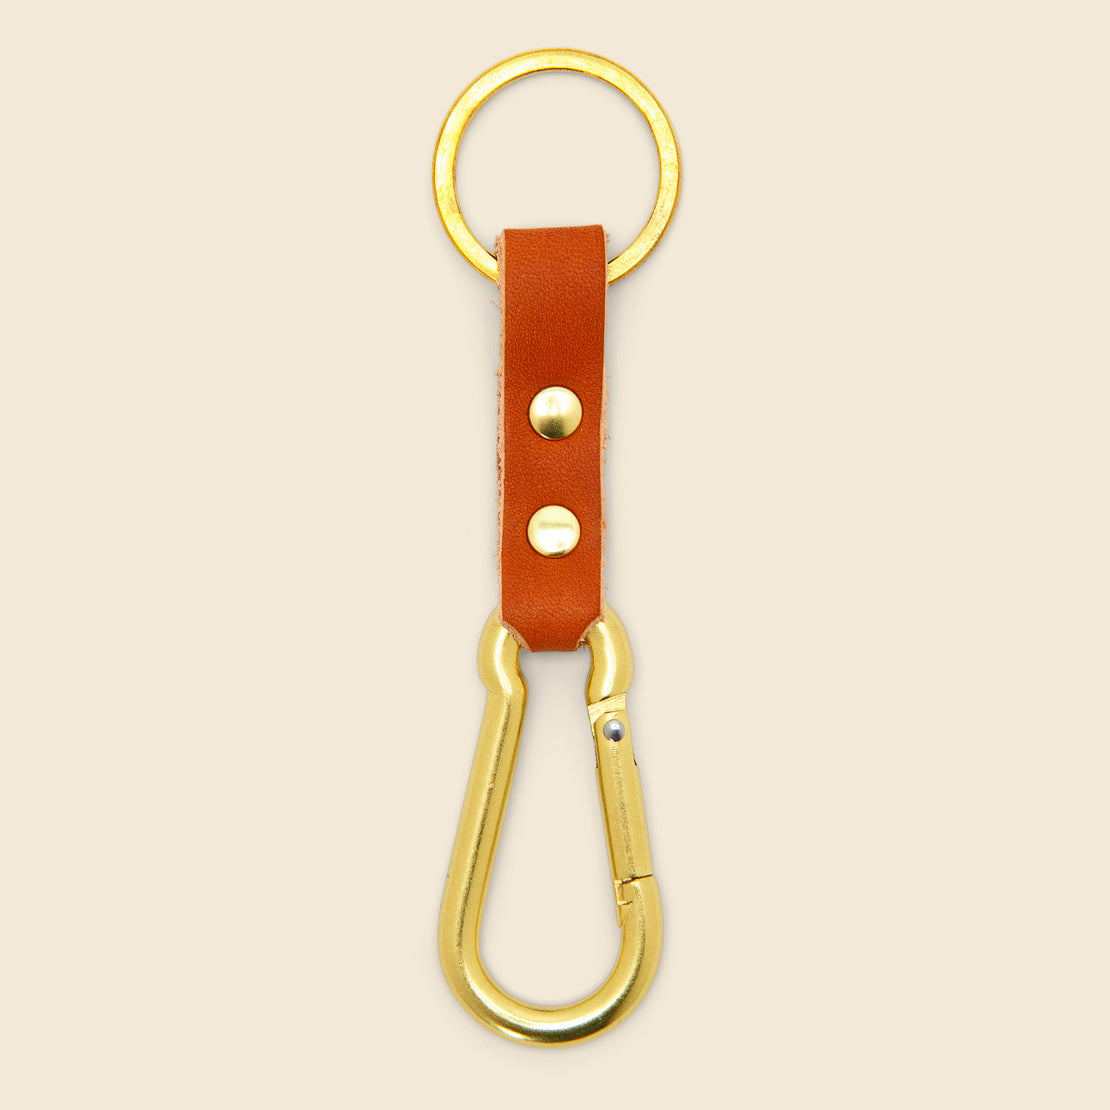 Son of a Sailor Carabiner Key Chain - Brown